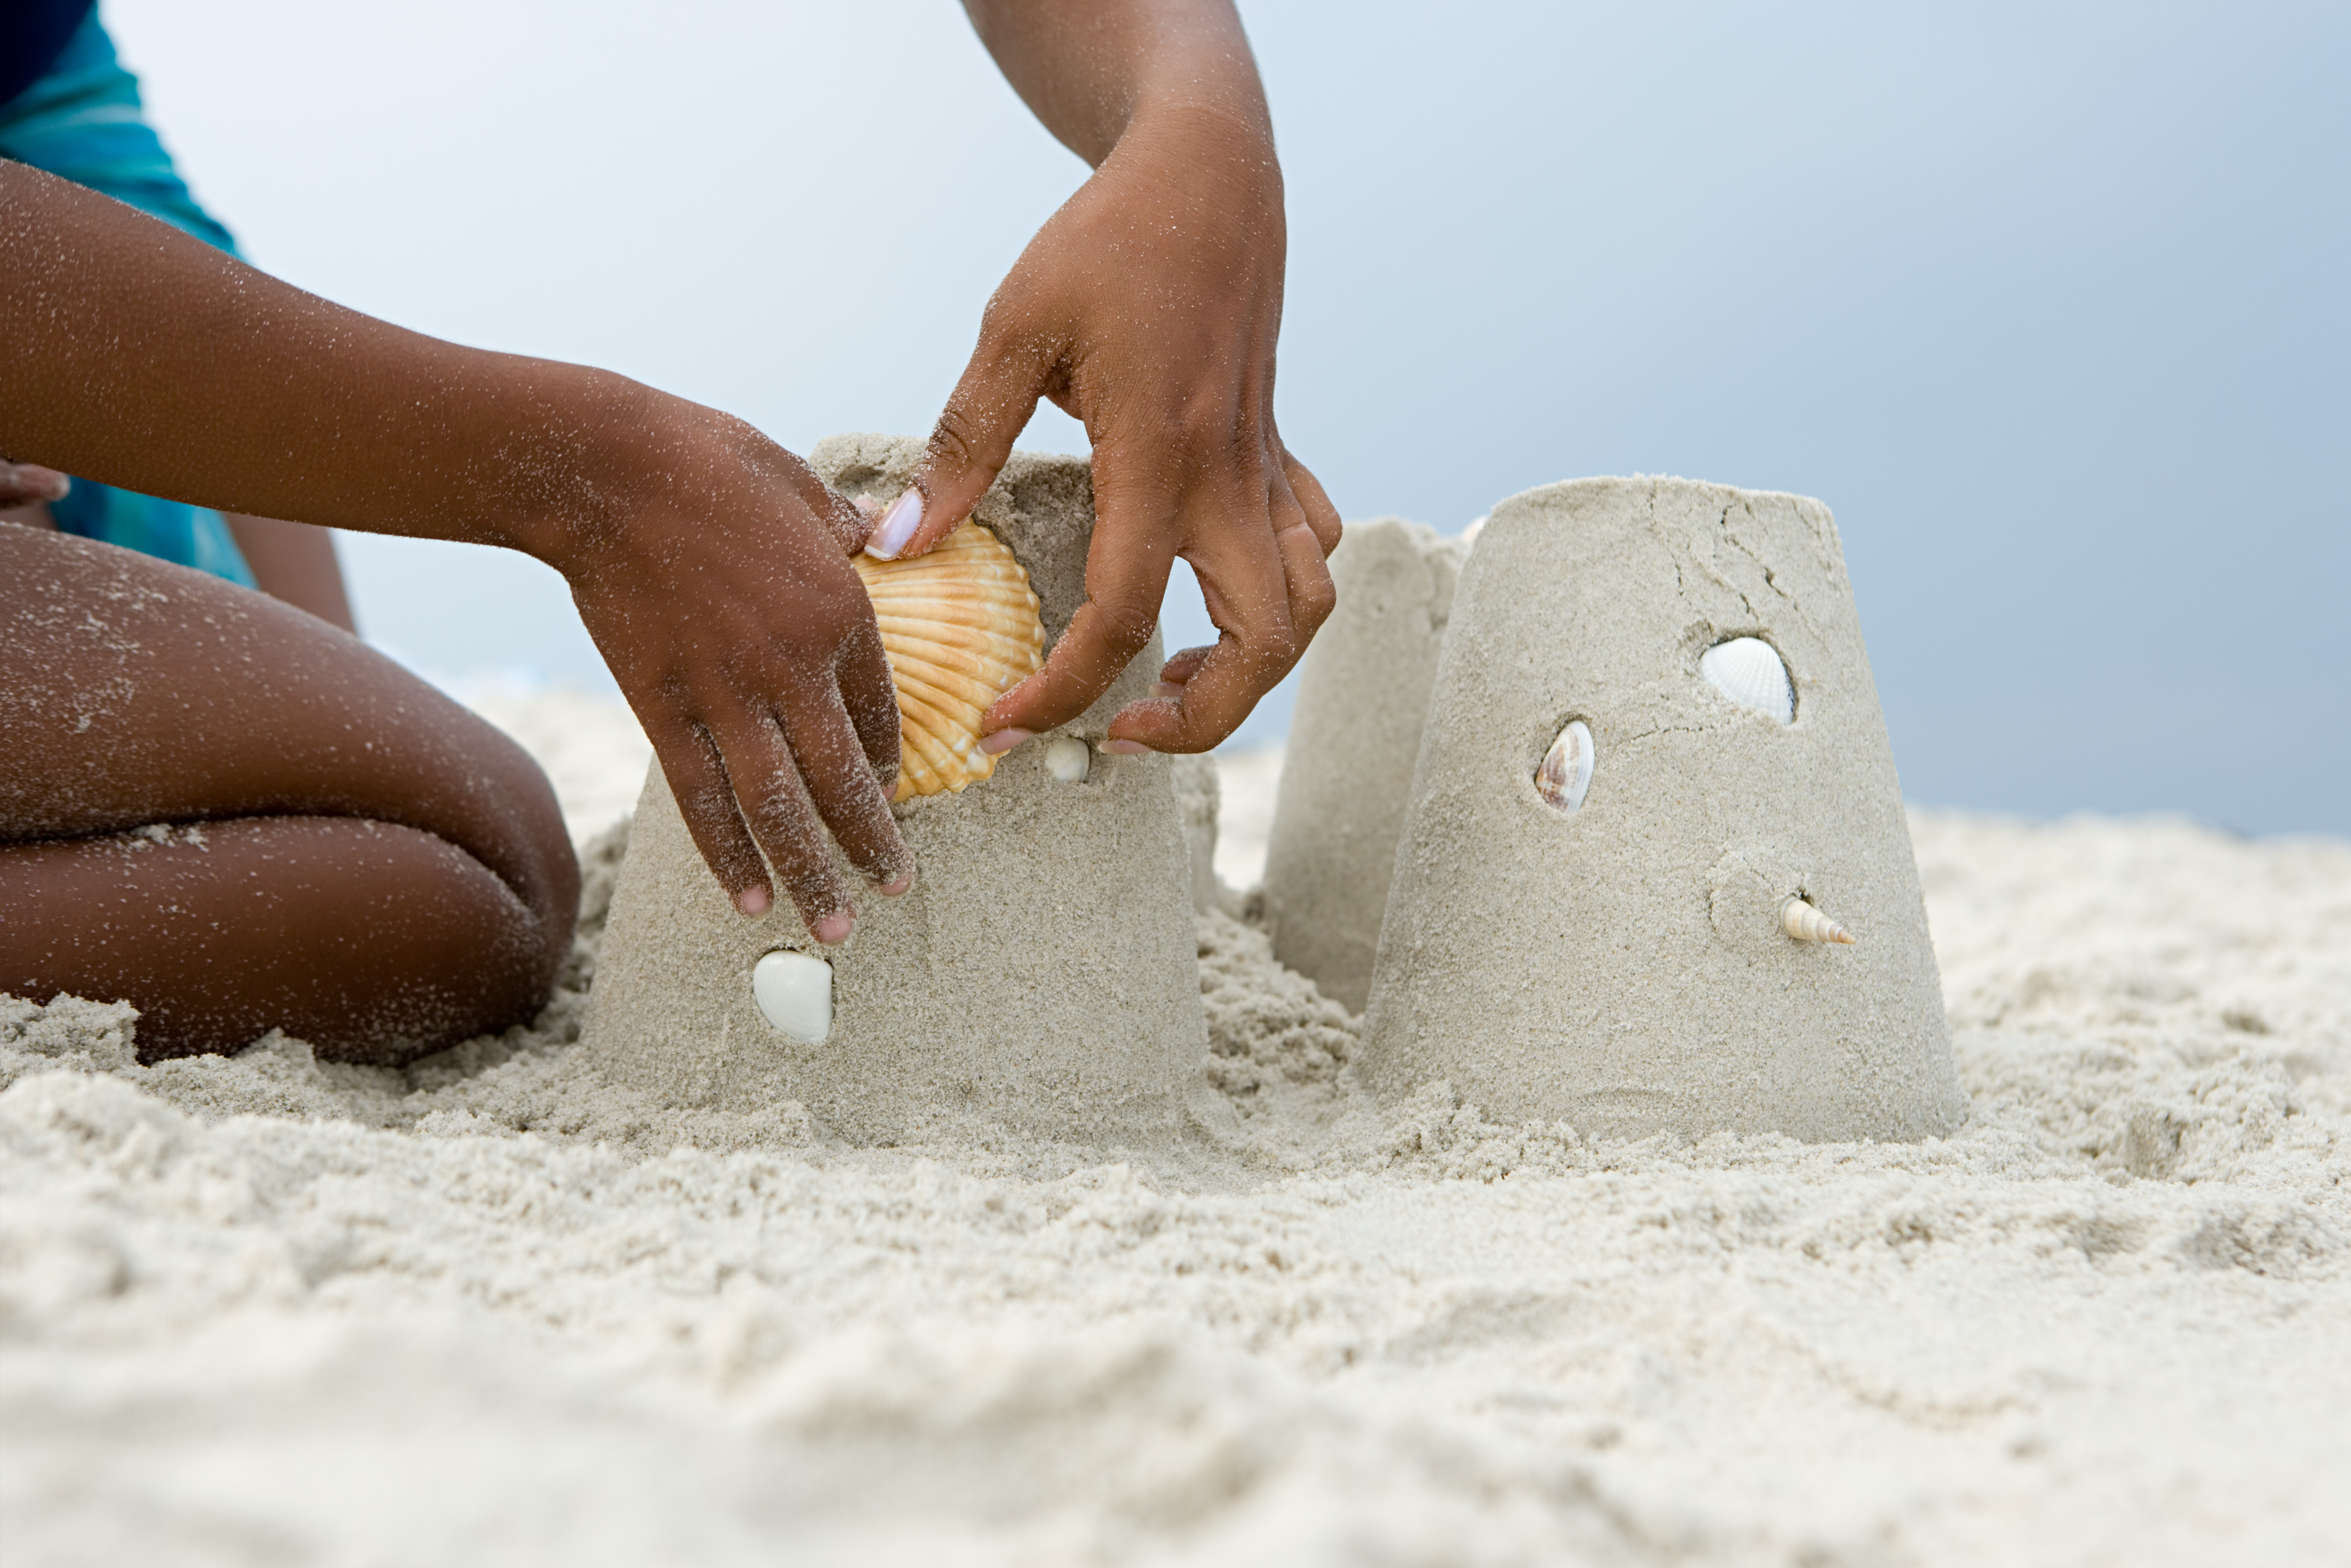 Hand placing shell on sand castle